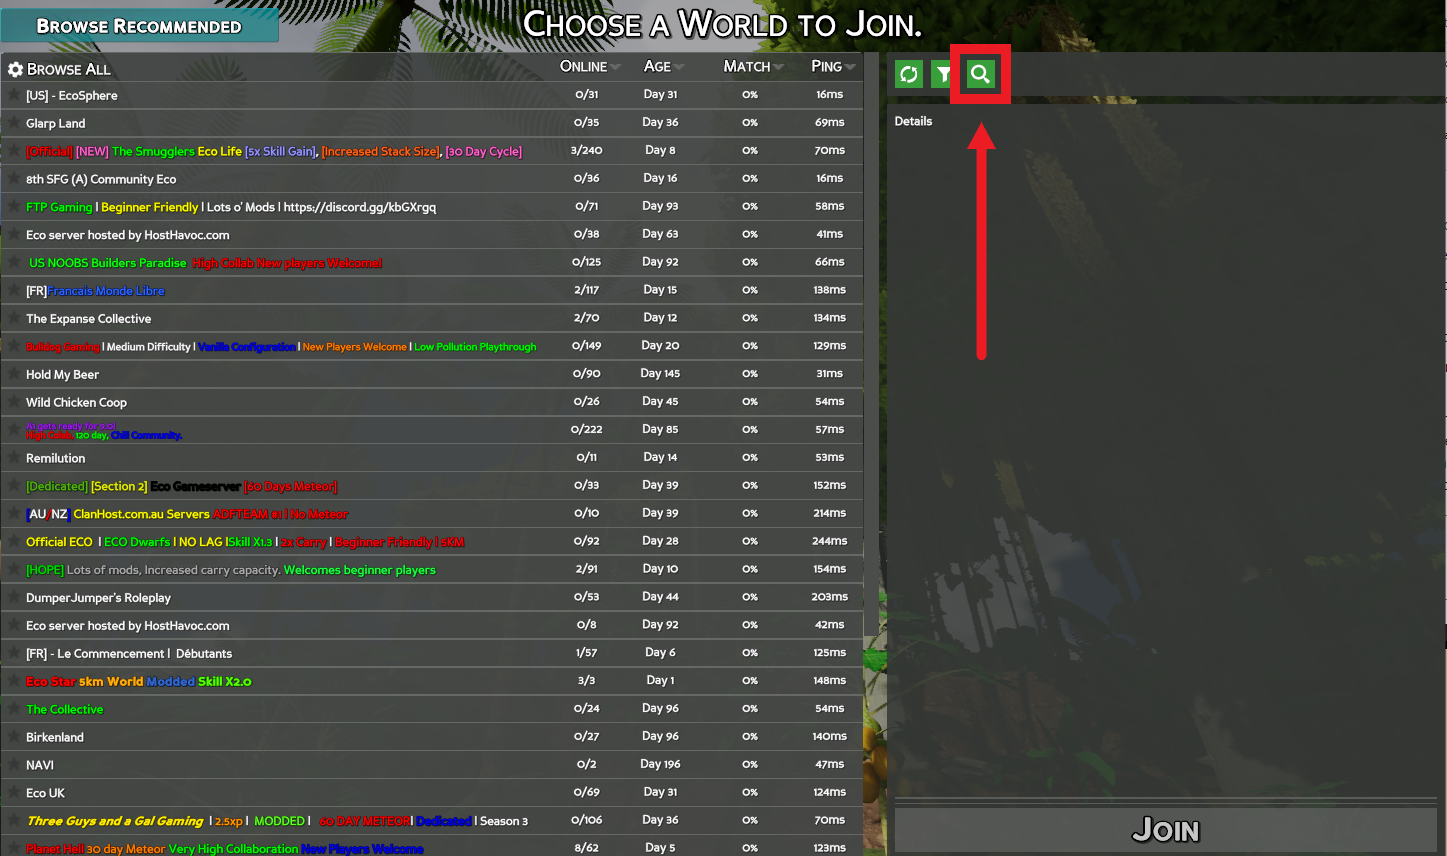 A view of the Browse All server listings for the game Eco, with the Search button highlighted